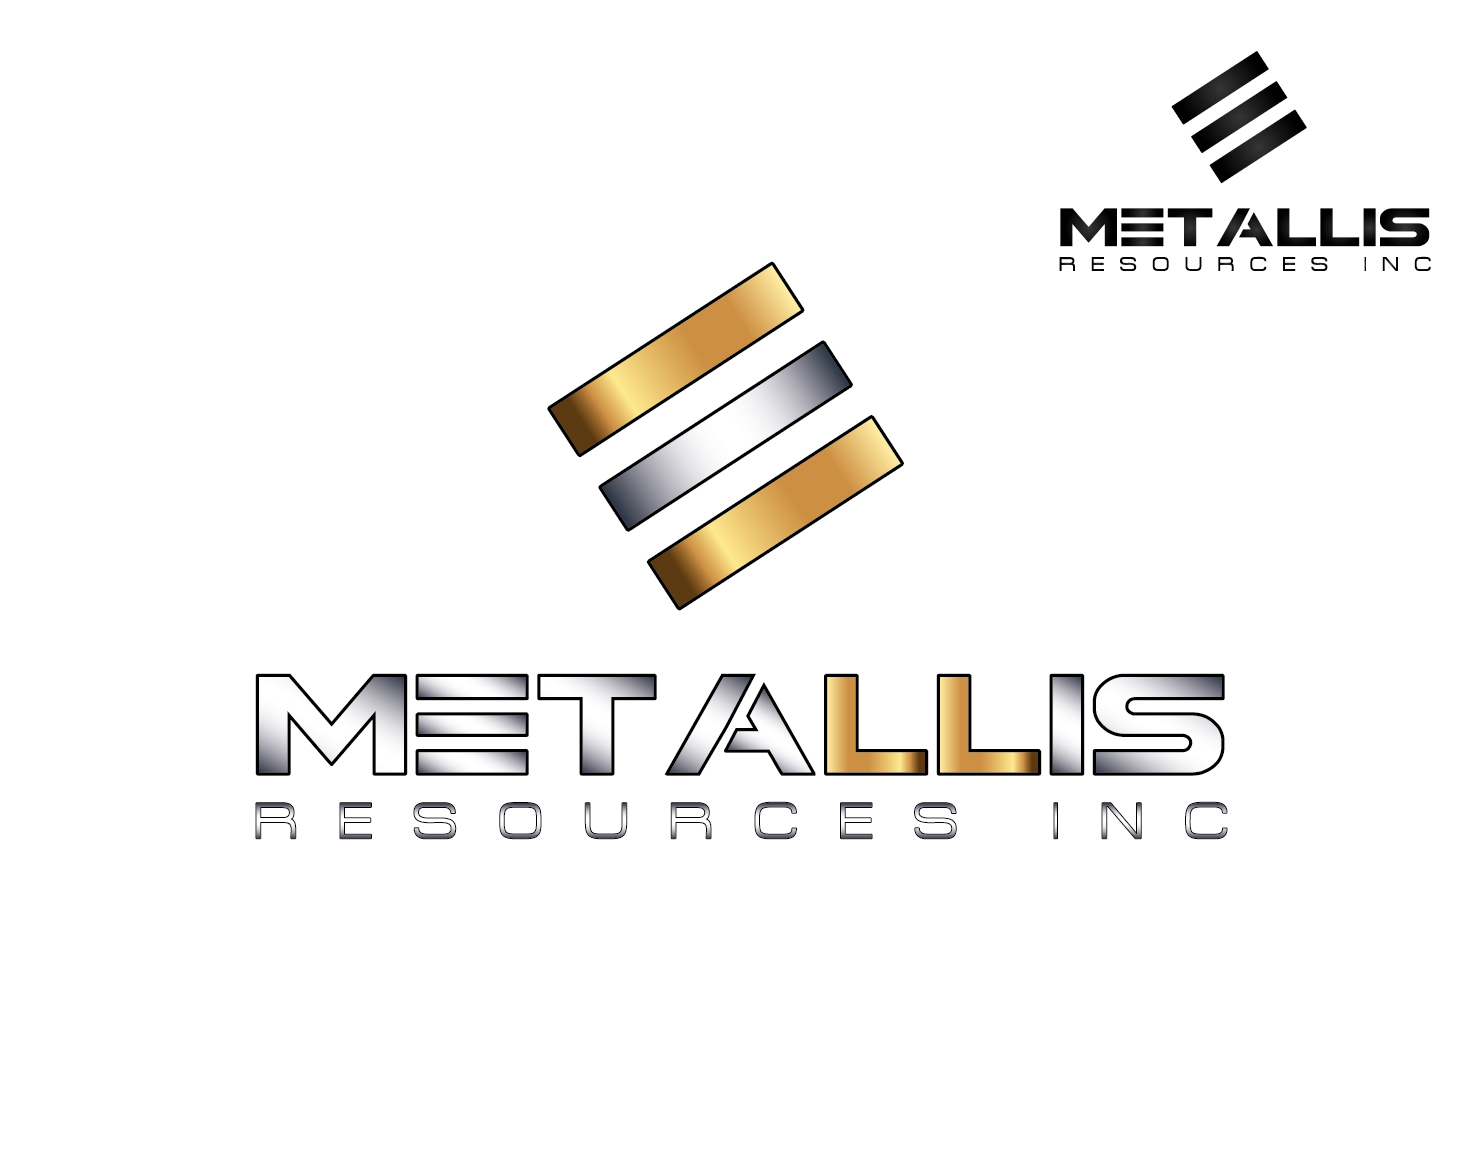 Logo Design by VENTSISLAV KOVACHEV - Entry No. 109 in the Logo Design Contest Metallis Resources Inc Logo Design.